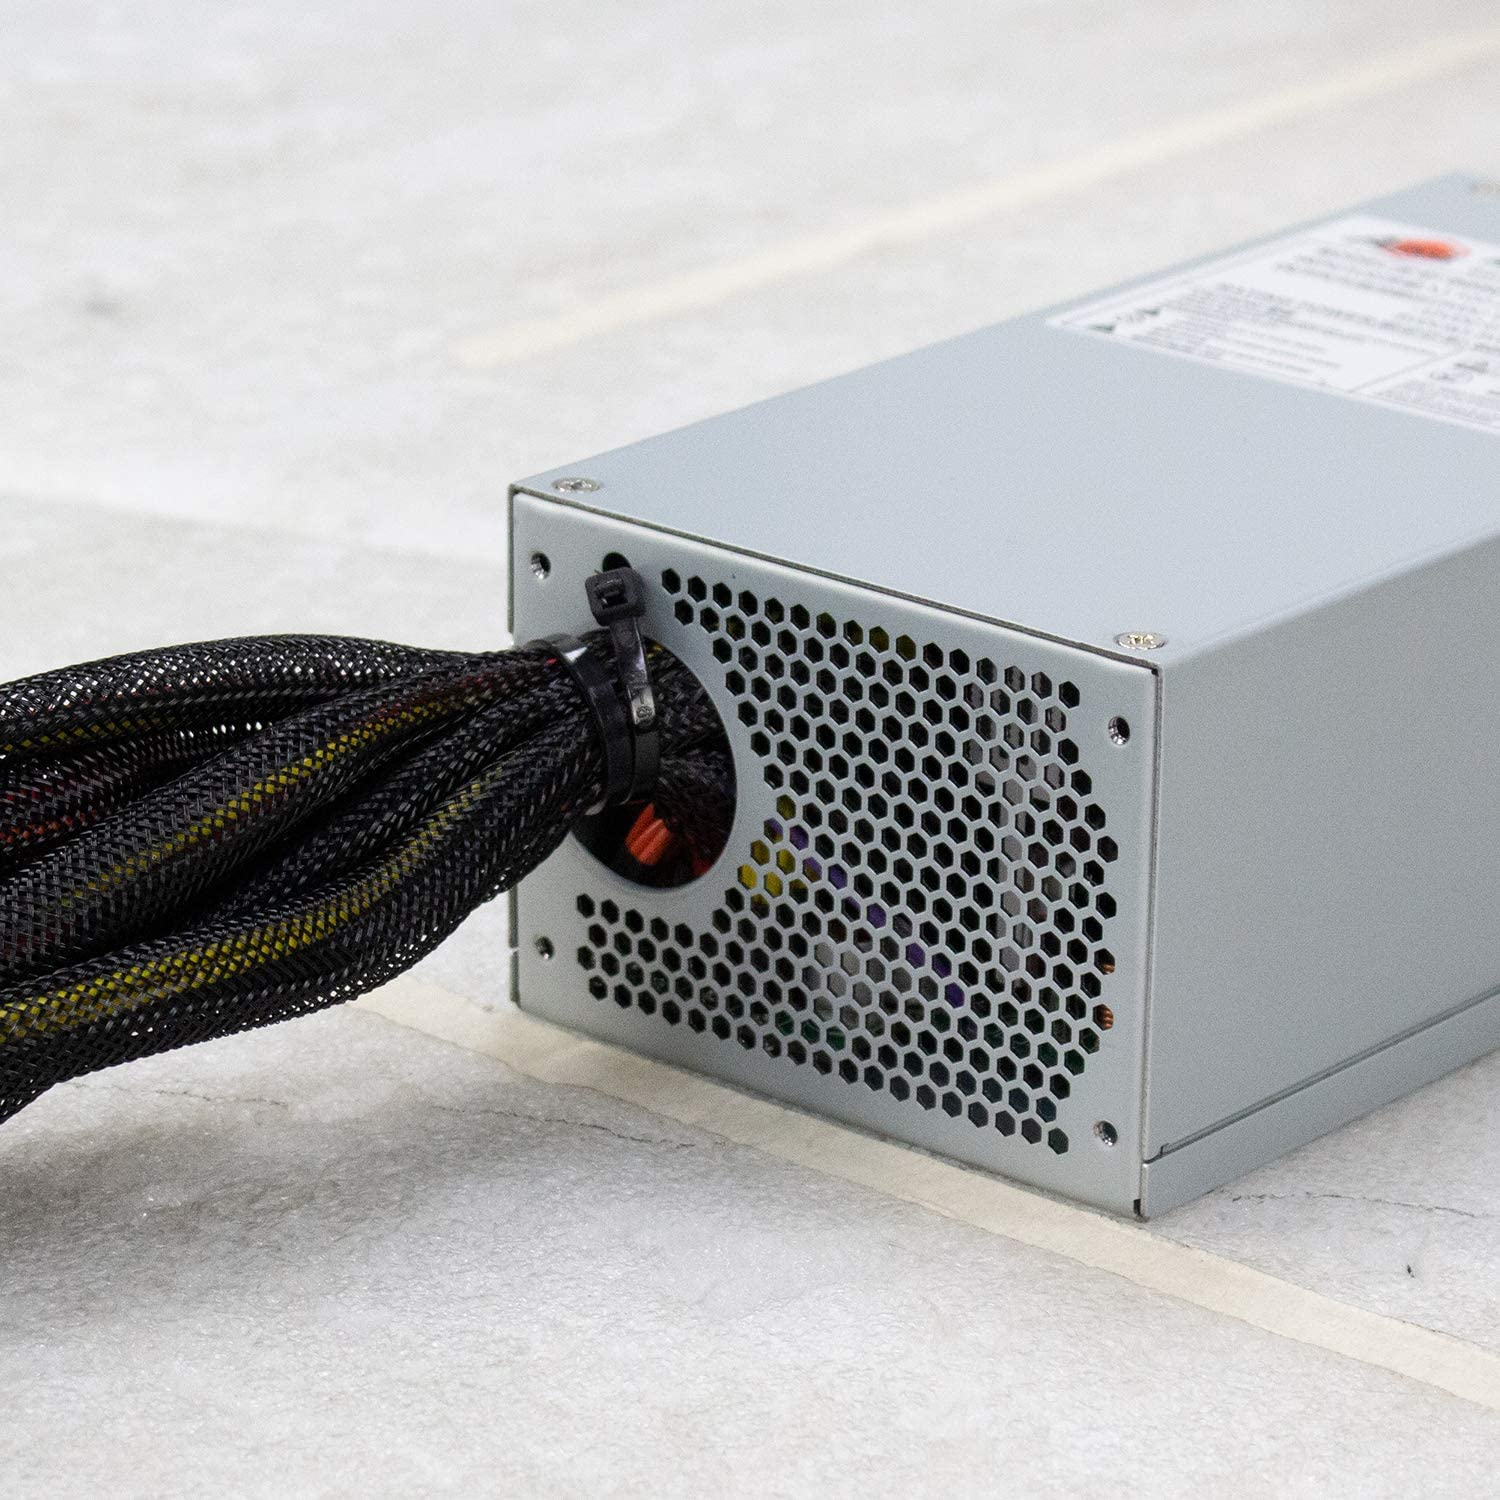 JINDIAN Standard 2U Power Supply Rated 500W 600W 800W Industrial Industrial Control Server Server Chassis Rack-Mounted Computer Host CPU Power Supply 600W Standard 2U-ATNG GD